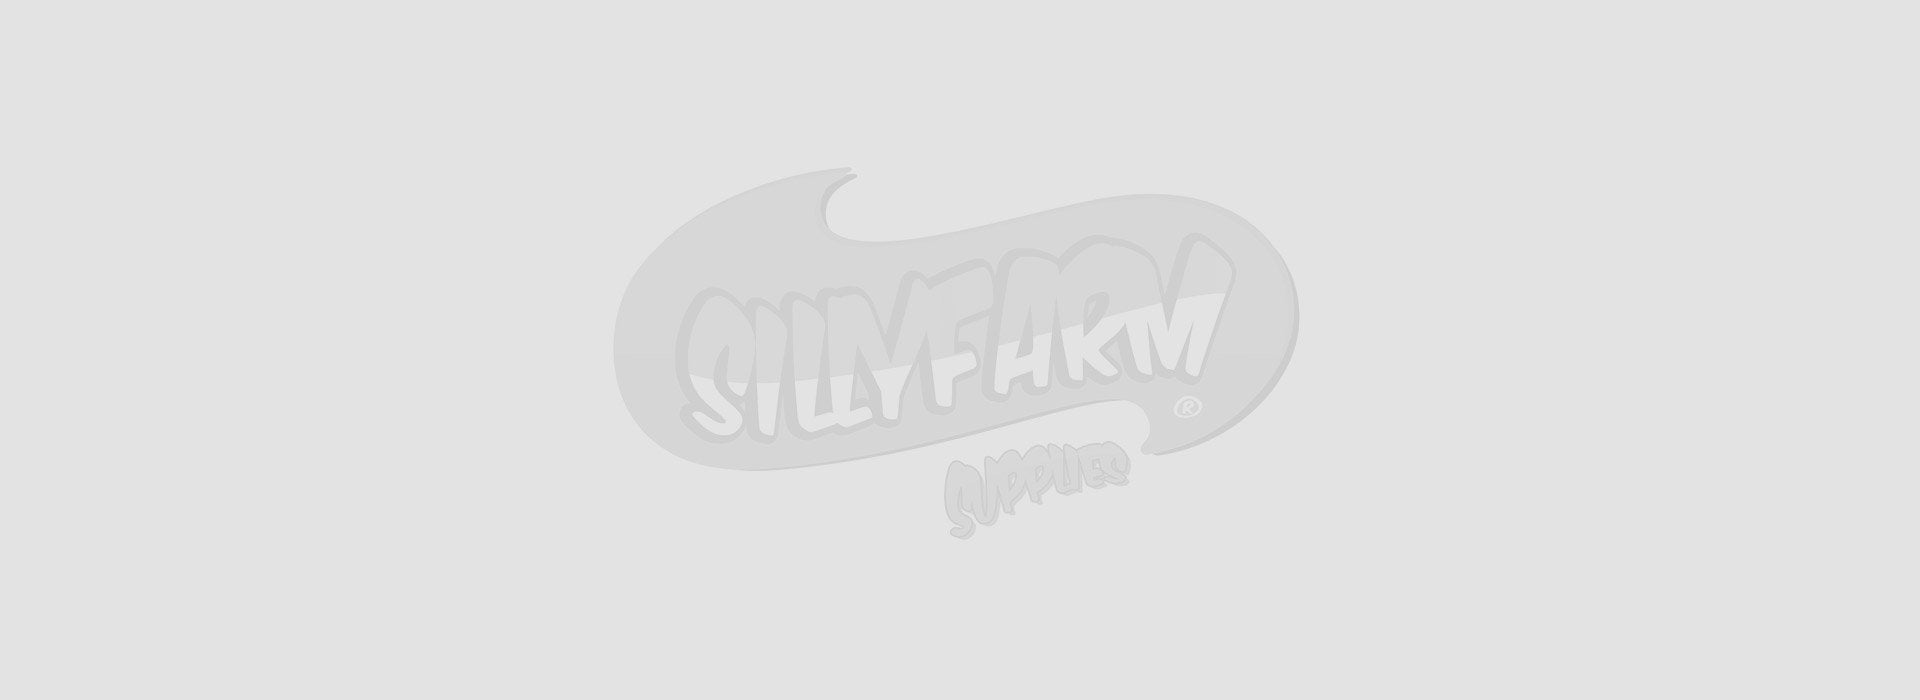 BADs | Silly Farm Supplies